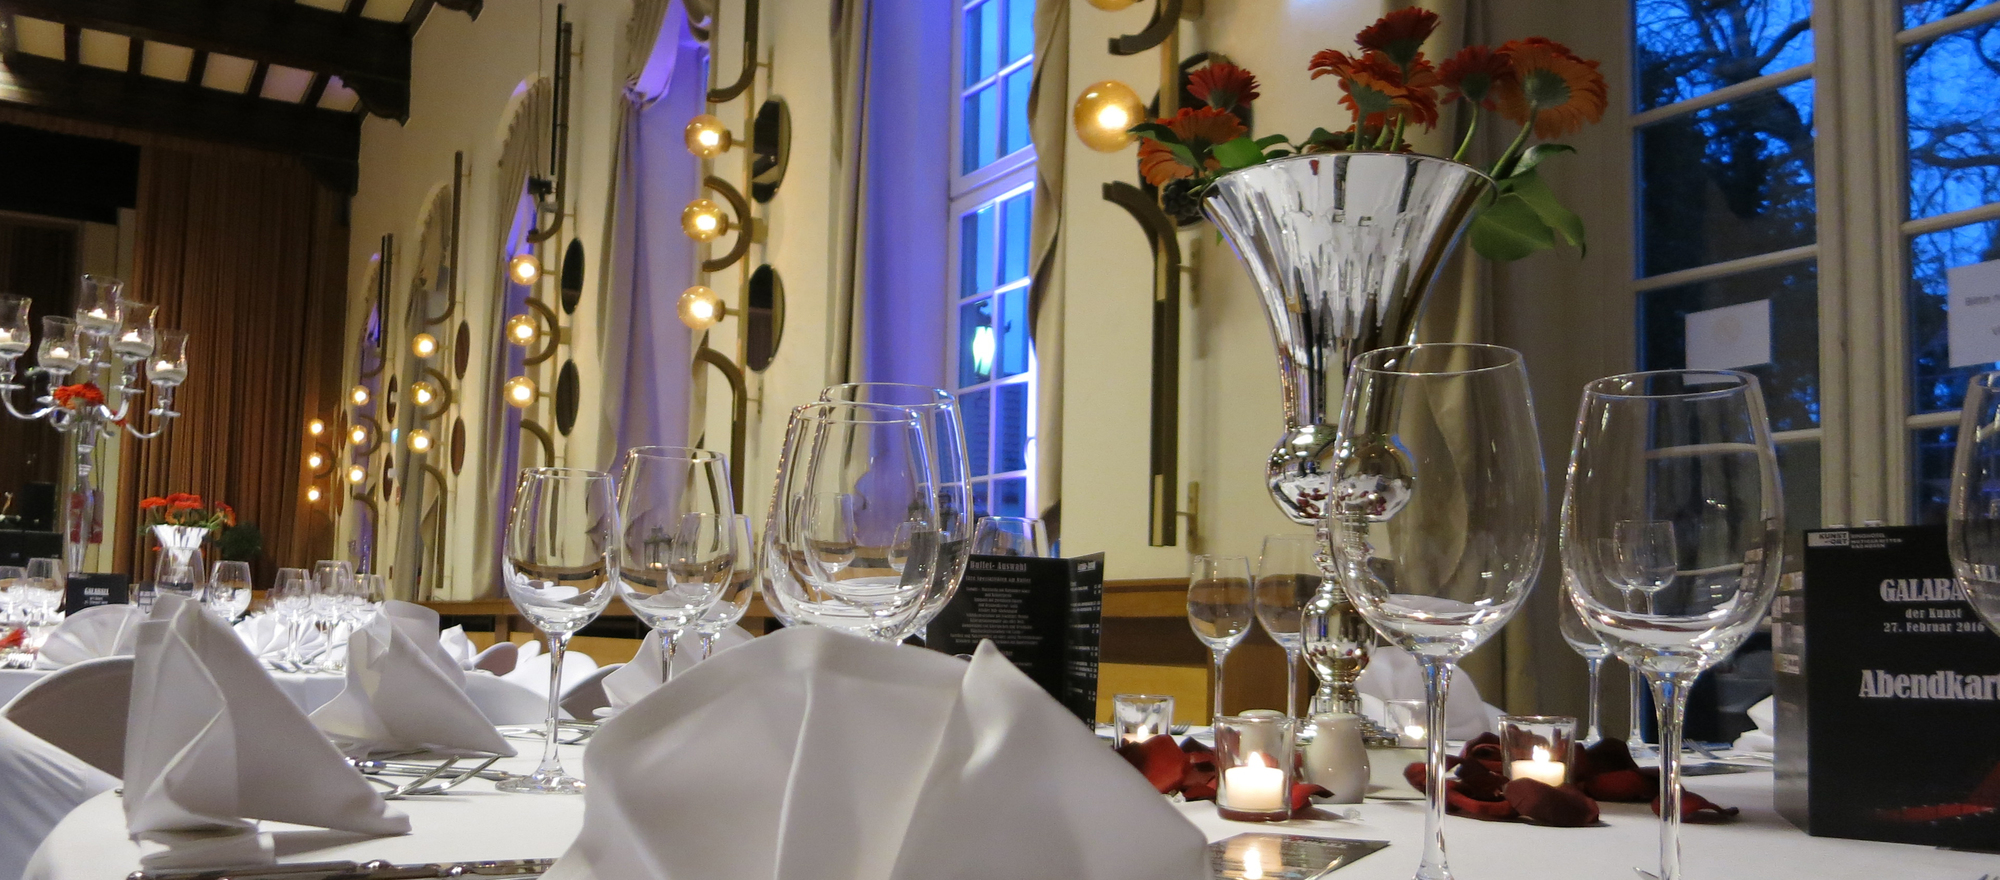 Romantic elegant rooms for celebrations in the hotel Ringhotel Mutiger Ritter in Bad Koesen